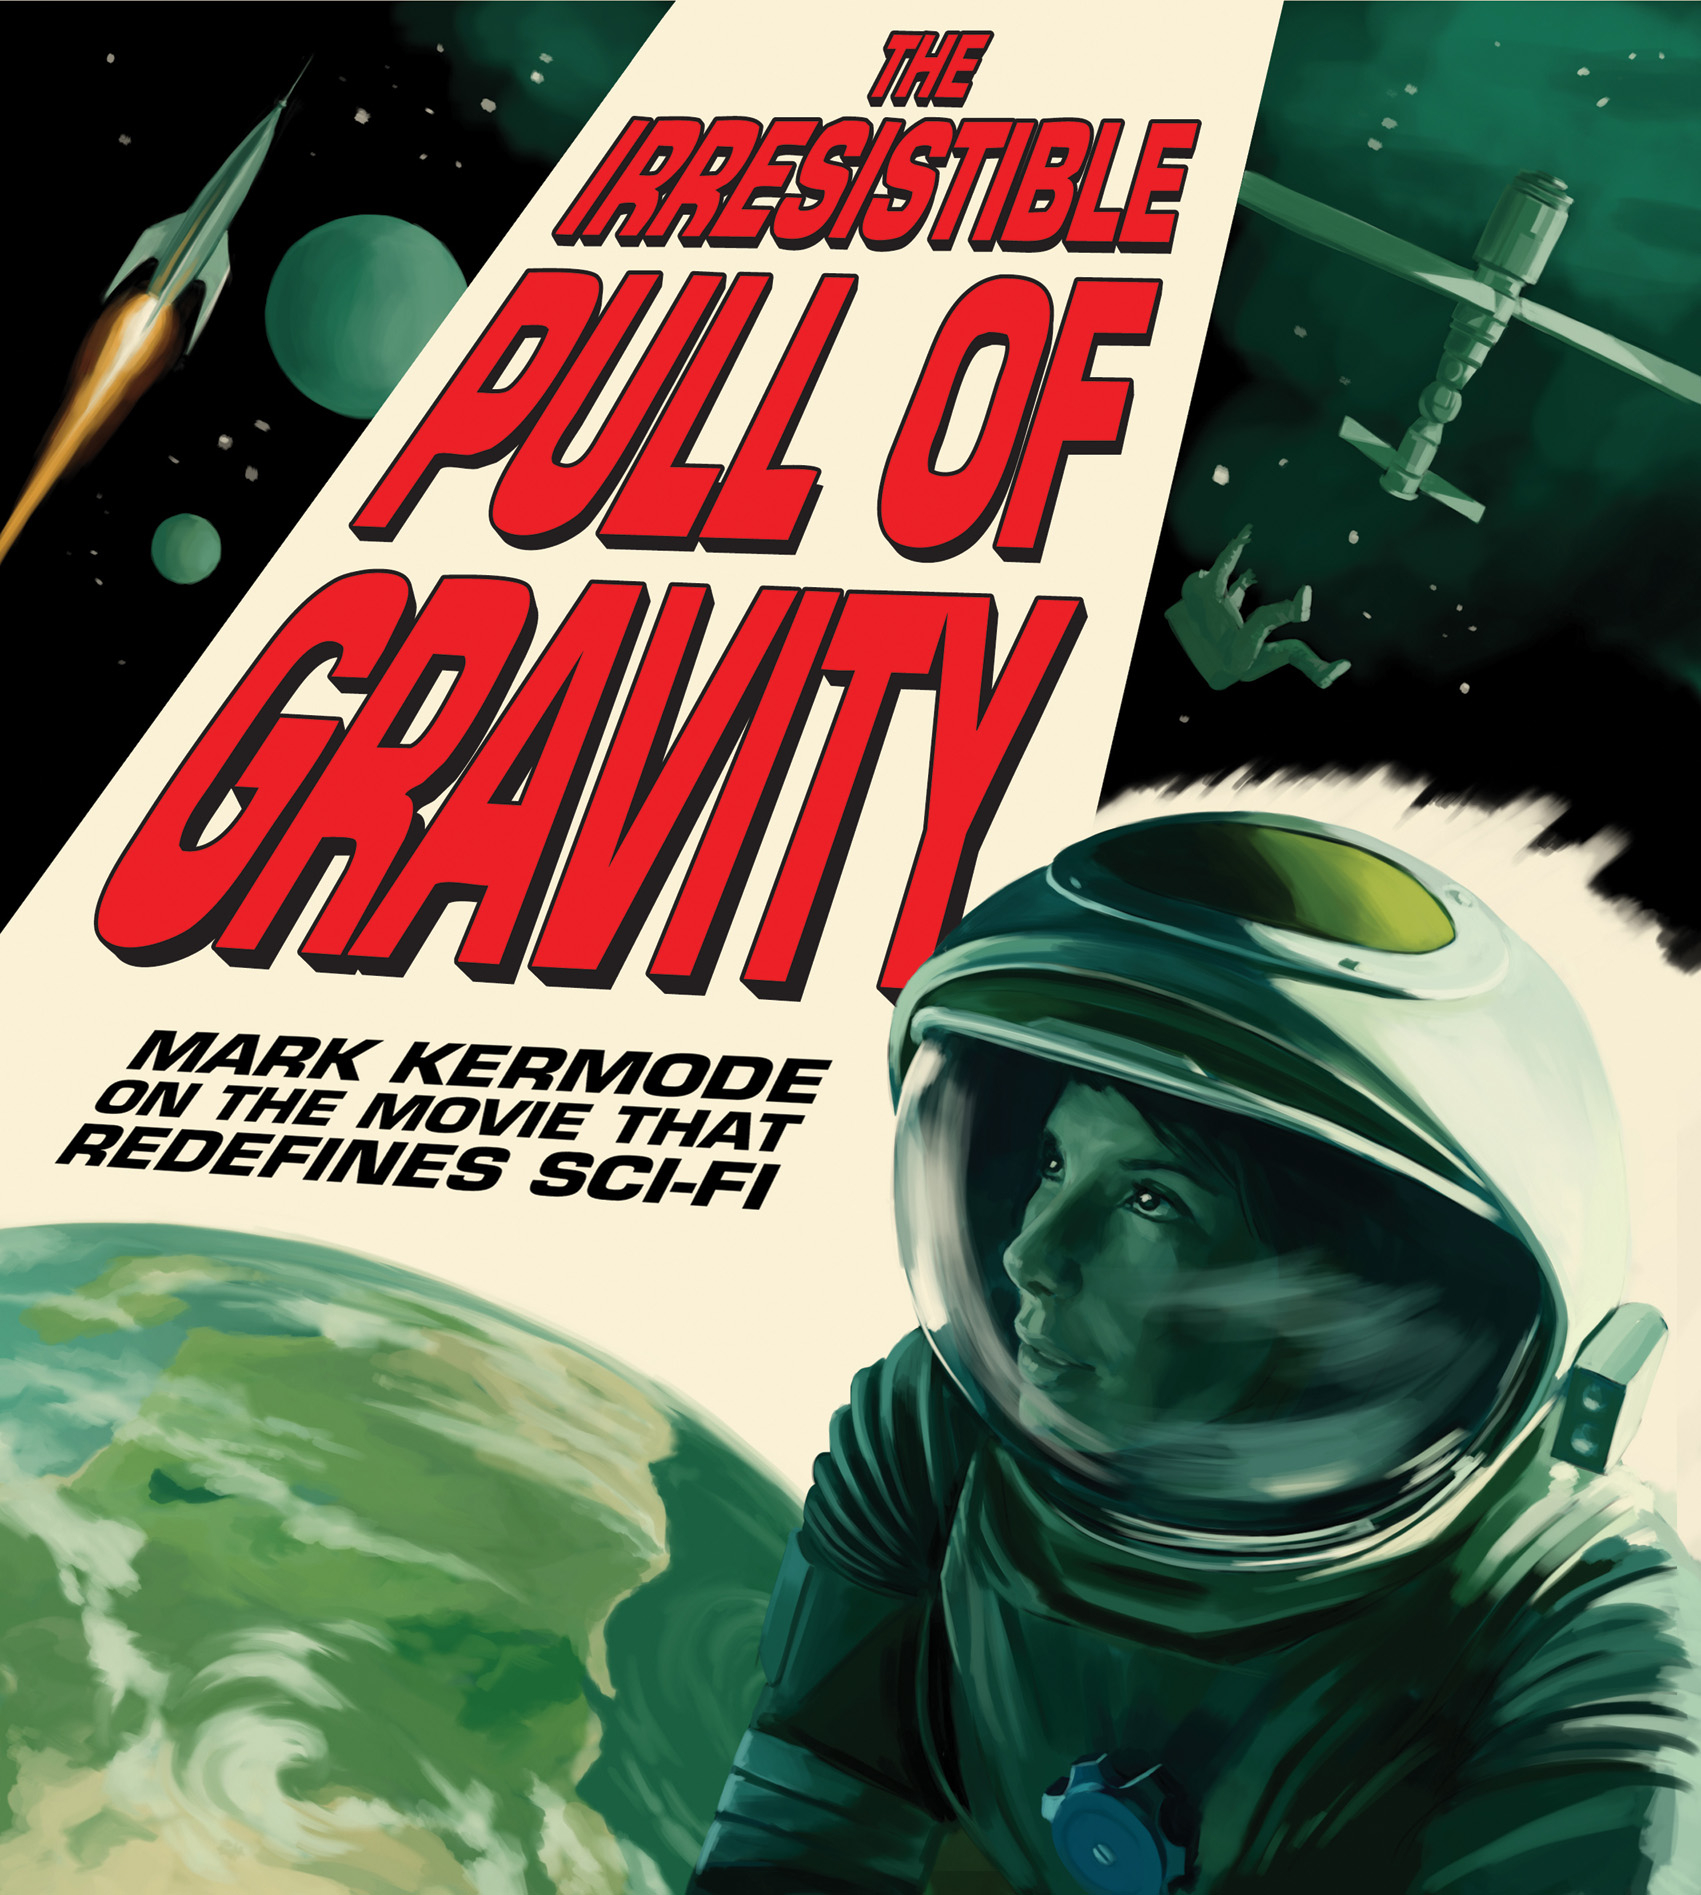 The Irresistible Pull Of Gravity